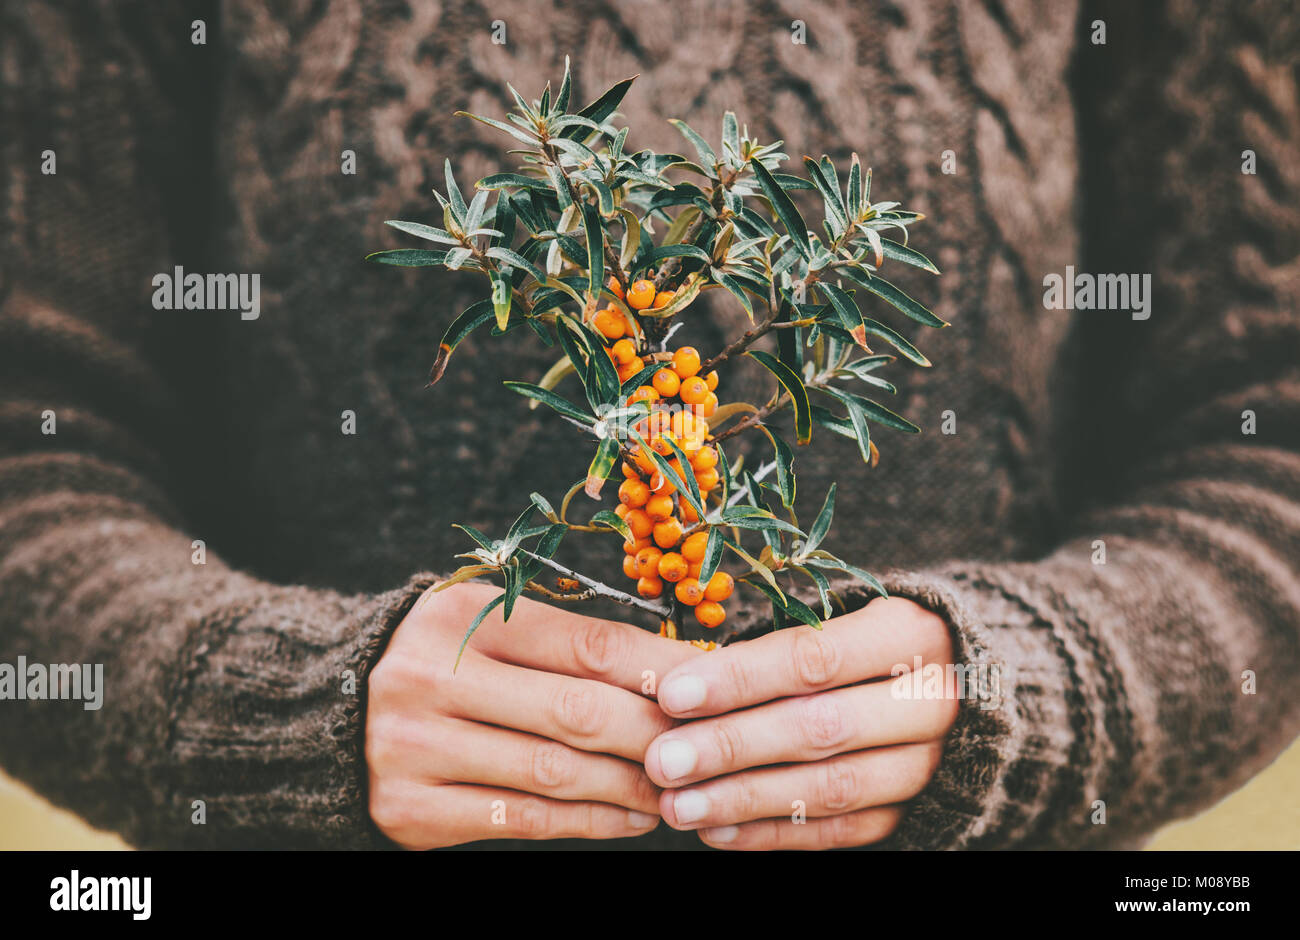 Woman hands holding sea buckthorn  berries organic food Healthy Lifestyle plant fresh picked cozy knitted sweater - Stock Image